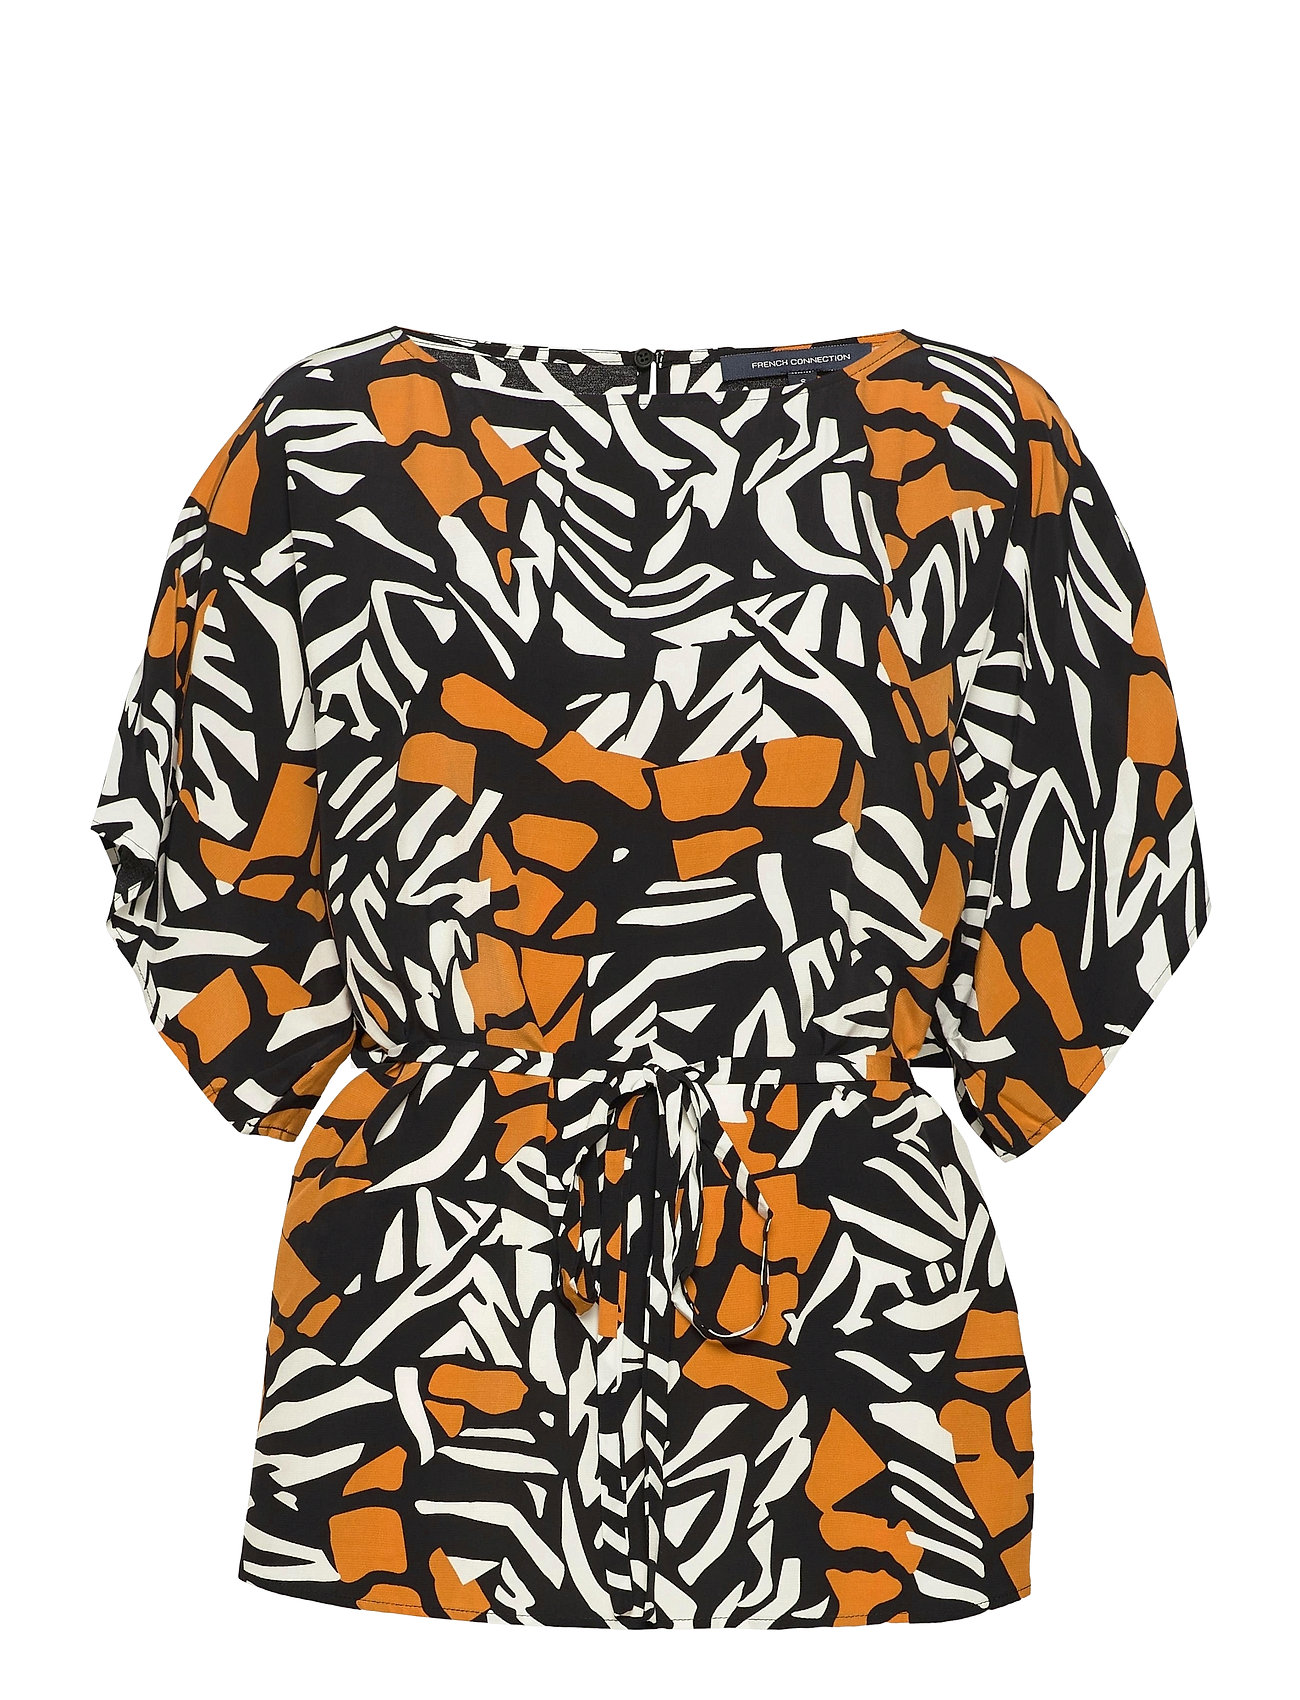 Image of Afara Drape Belted Top Blouses Short-sleeved Sort French Connection (3504038401)